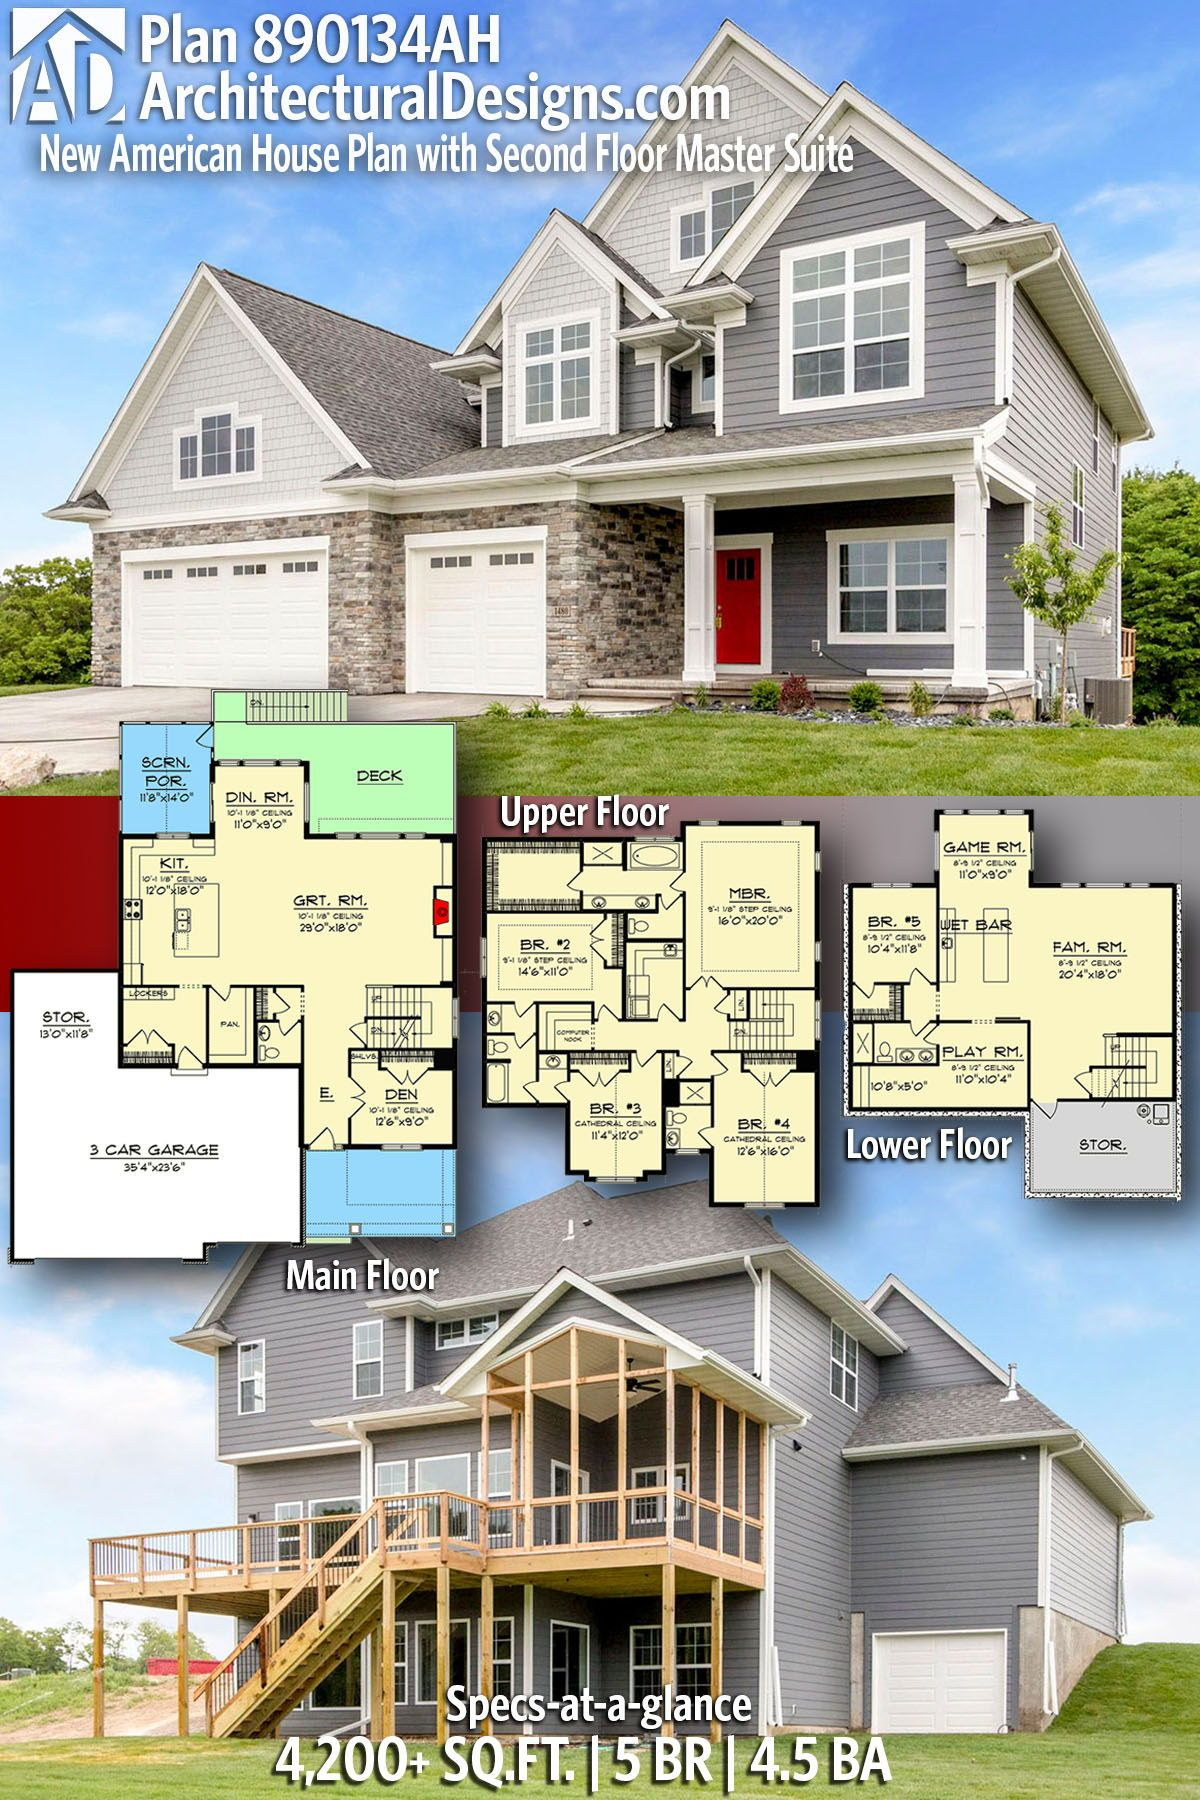 Plan 890134AH: New American House Plan With Second Floor